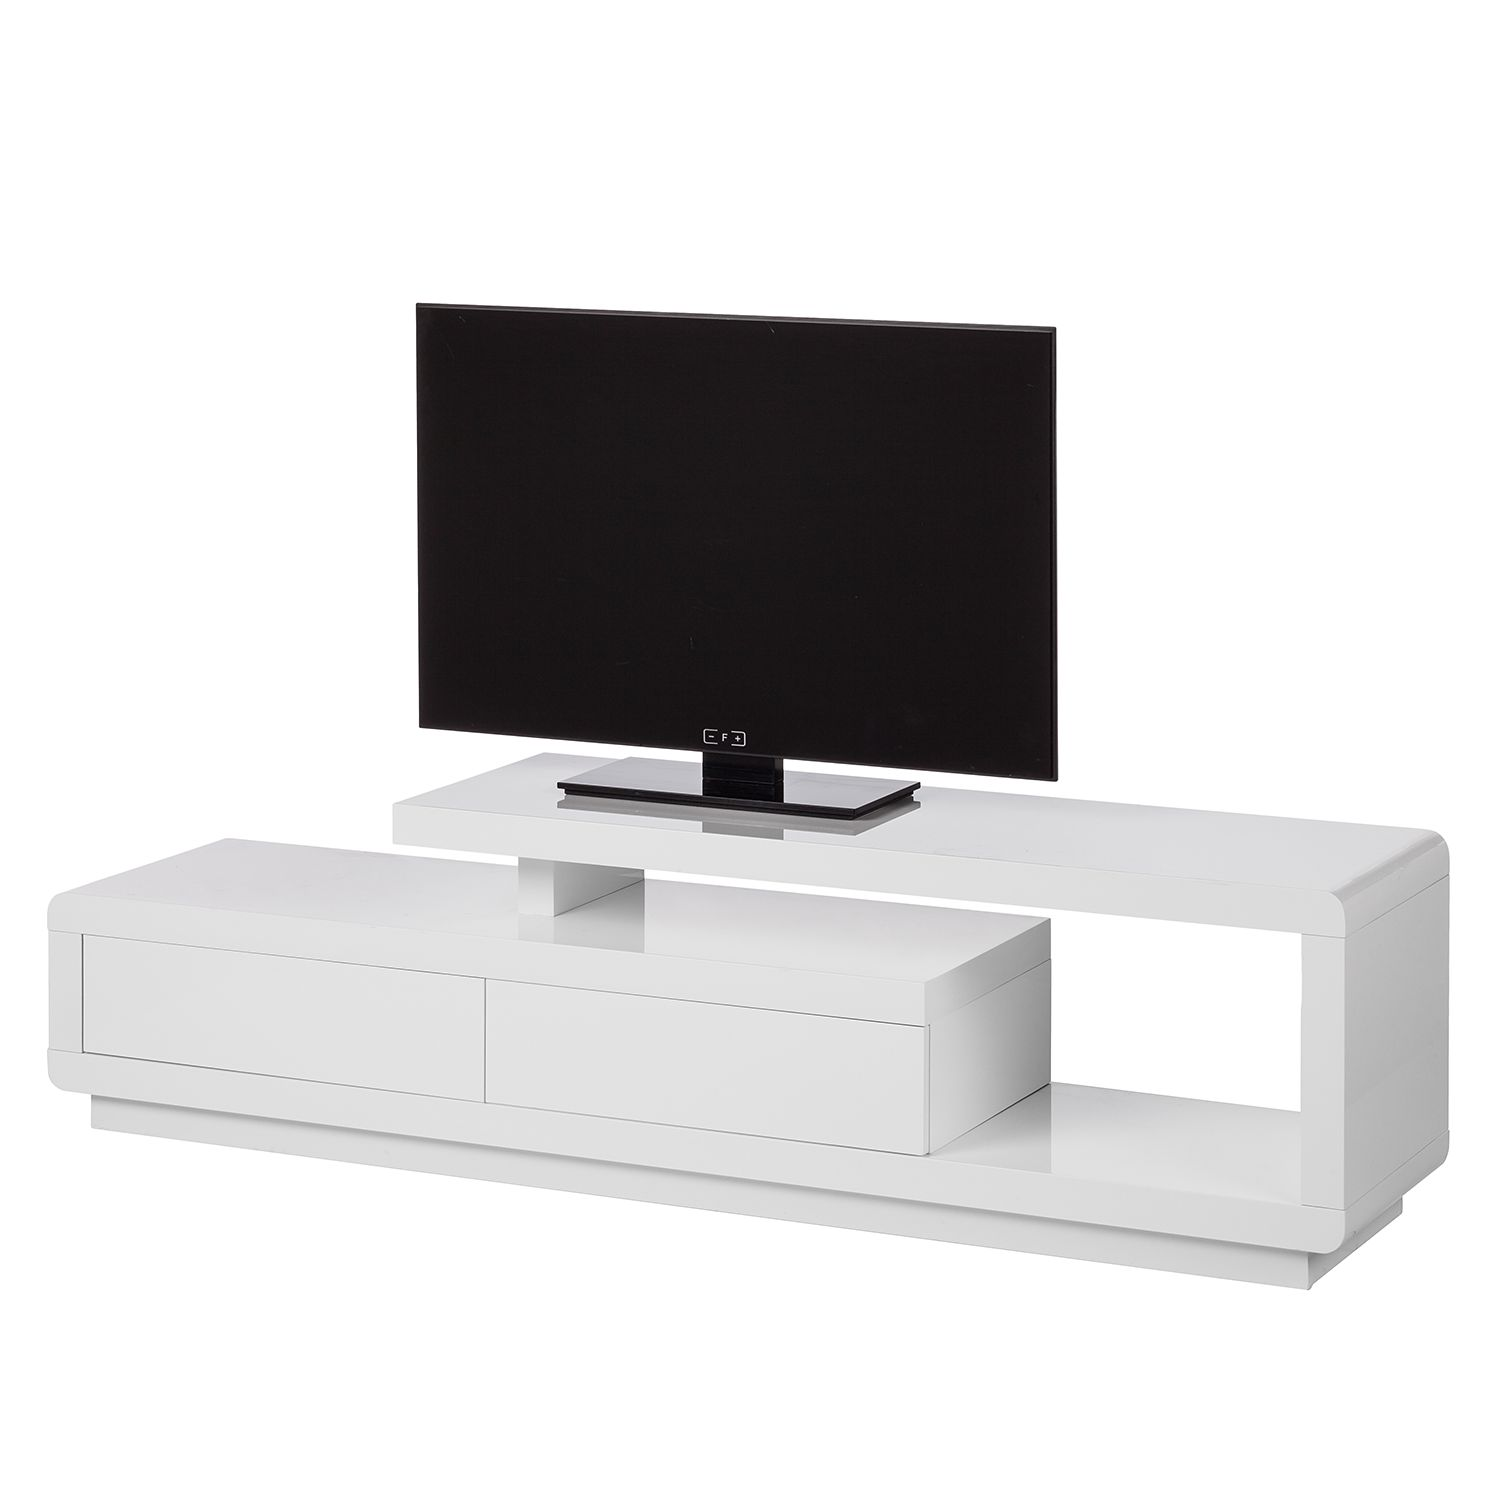 Meuble TV t-vision - Blanc brillant - 170 cm, Fredriks